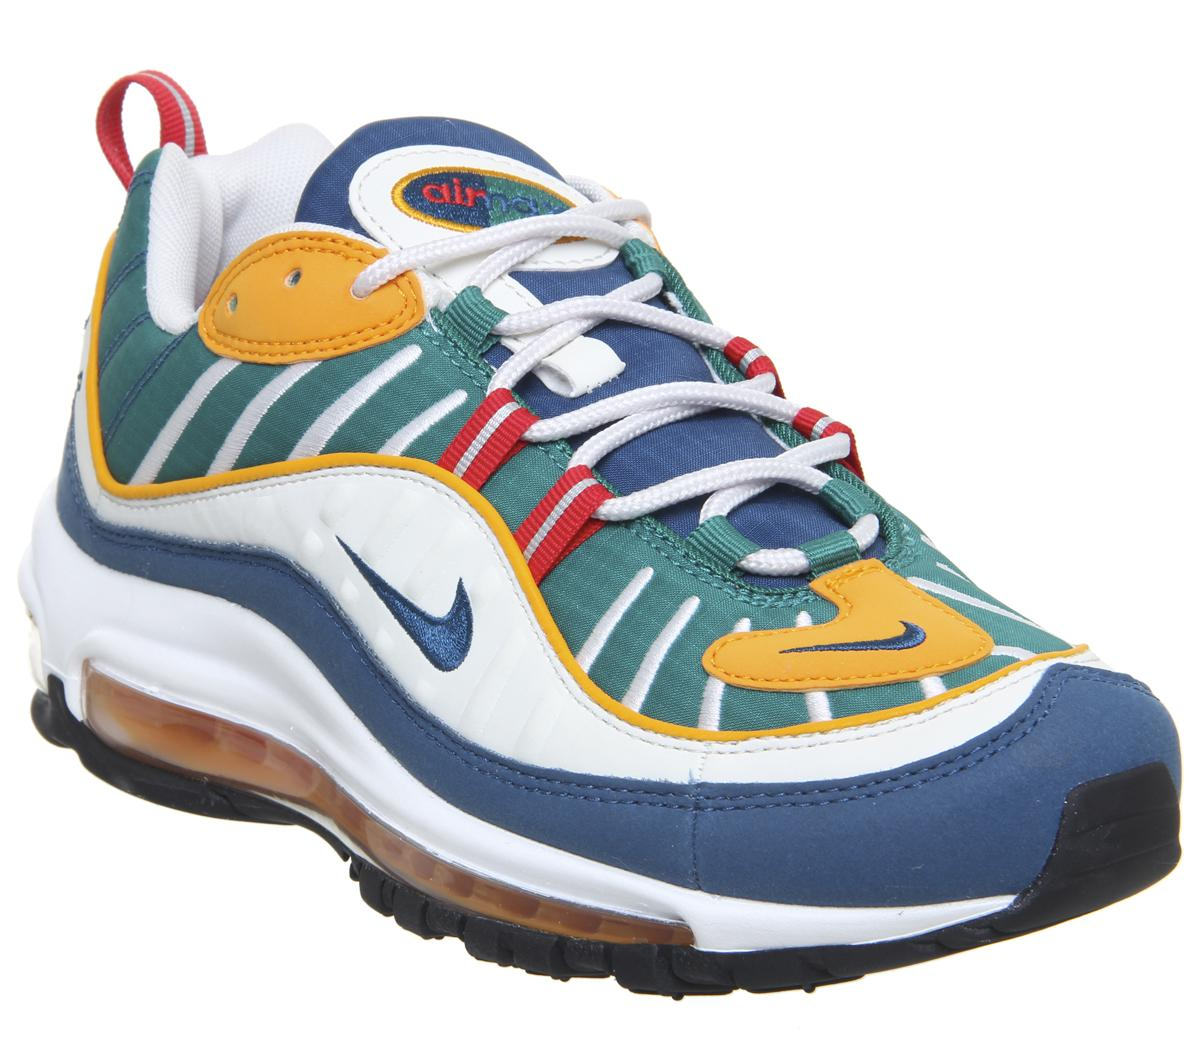 George Eliot excitación Capitán Brie  Nike Air Max 98 University Red Blue Force Orange Peel - His trainers